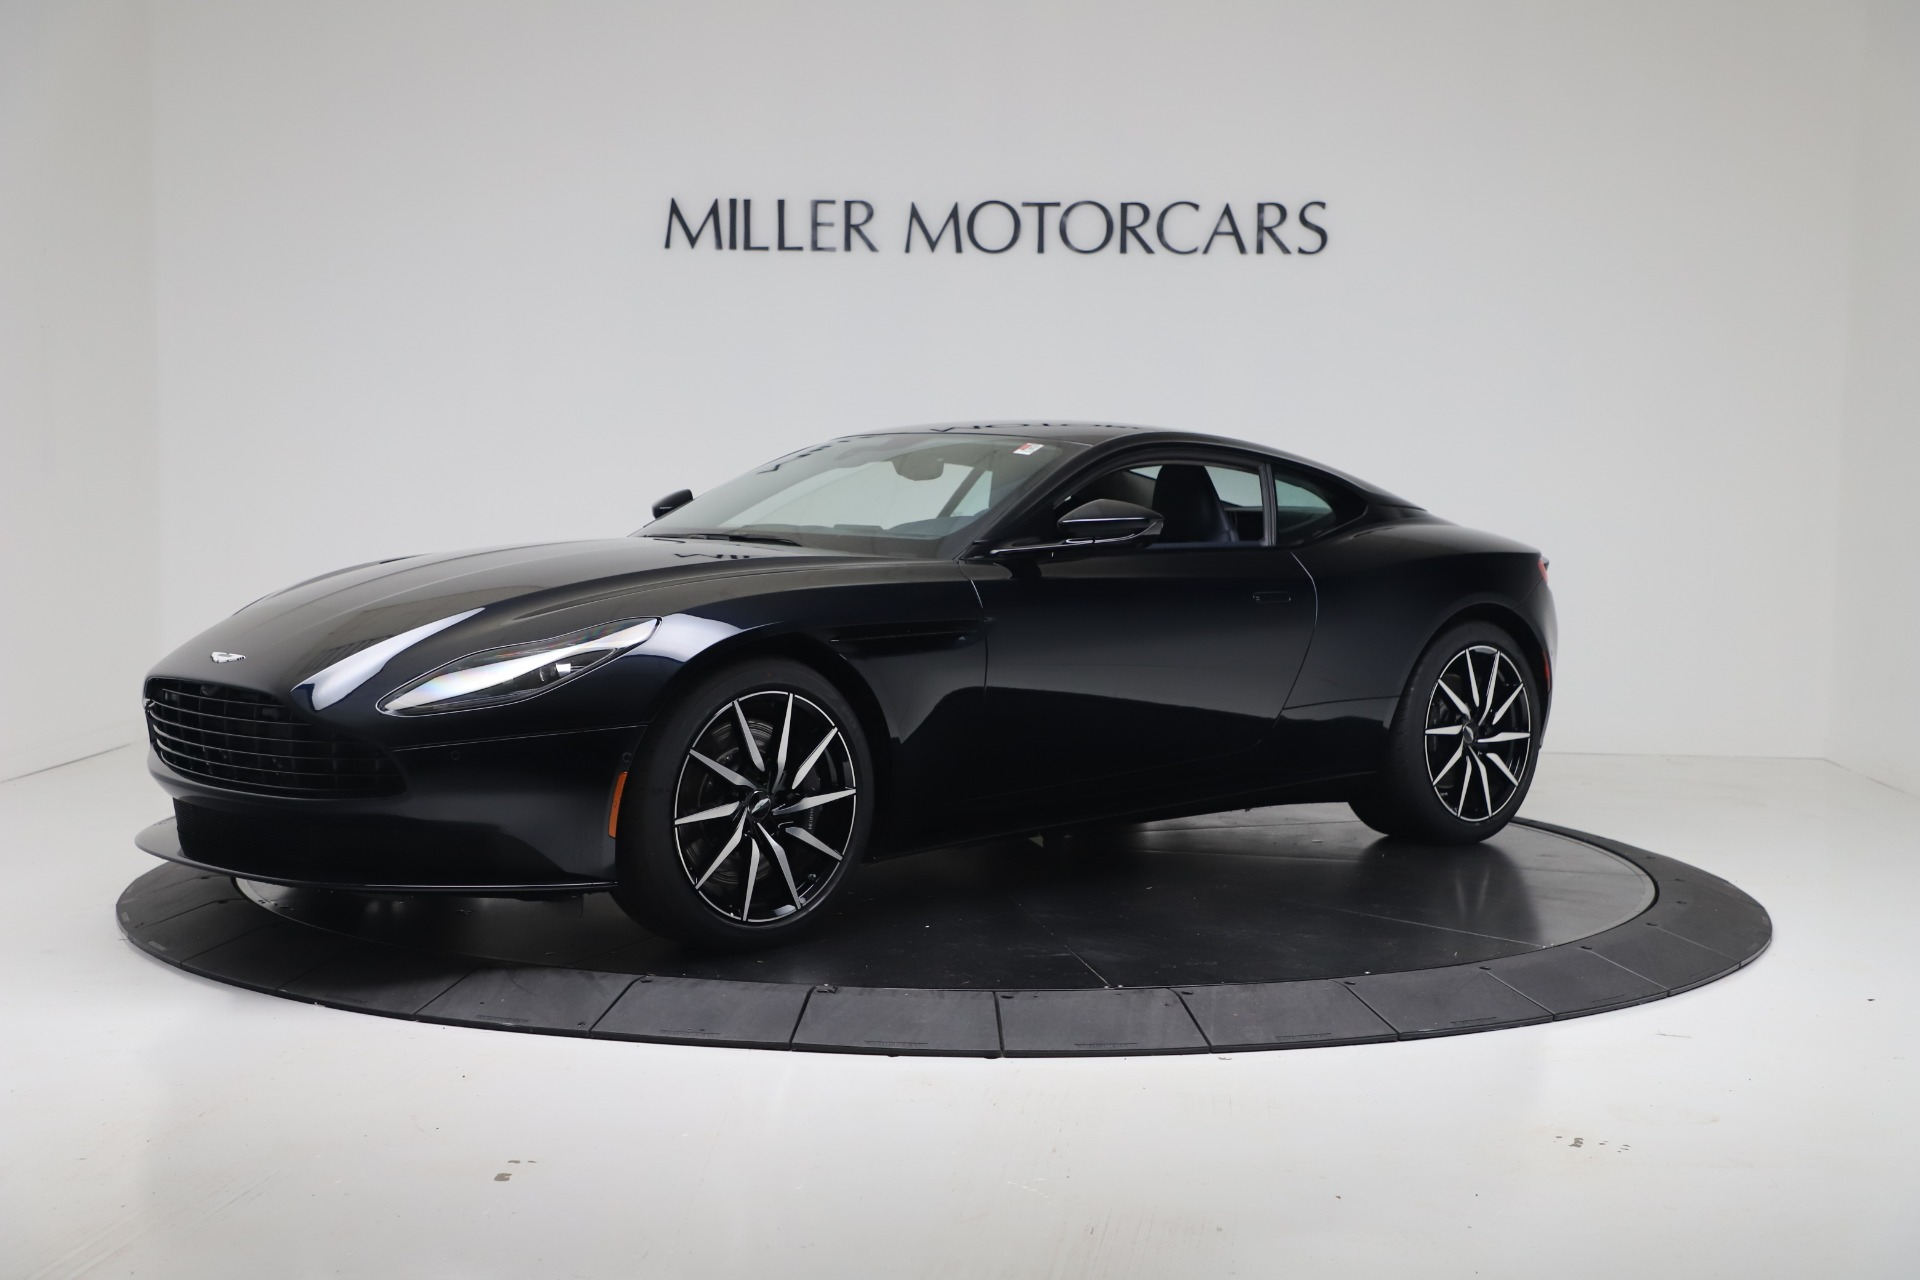 New 2020 Aston Martin Db11 V8 Coupe For Sale 237 996 Miller Motorcars Stock A1423